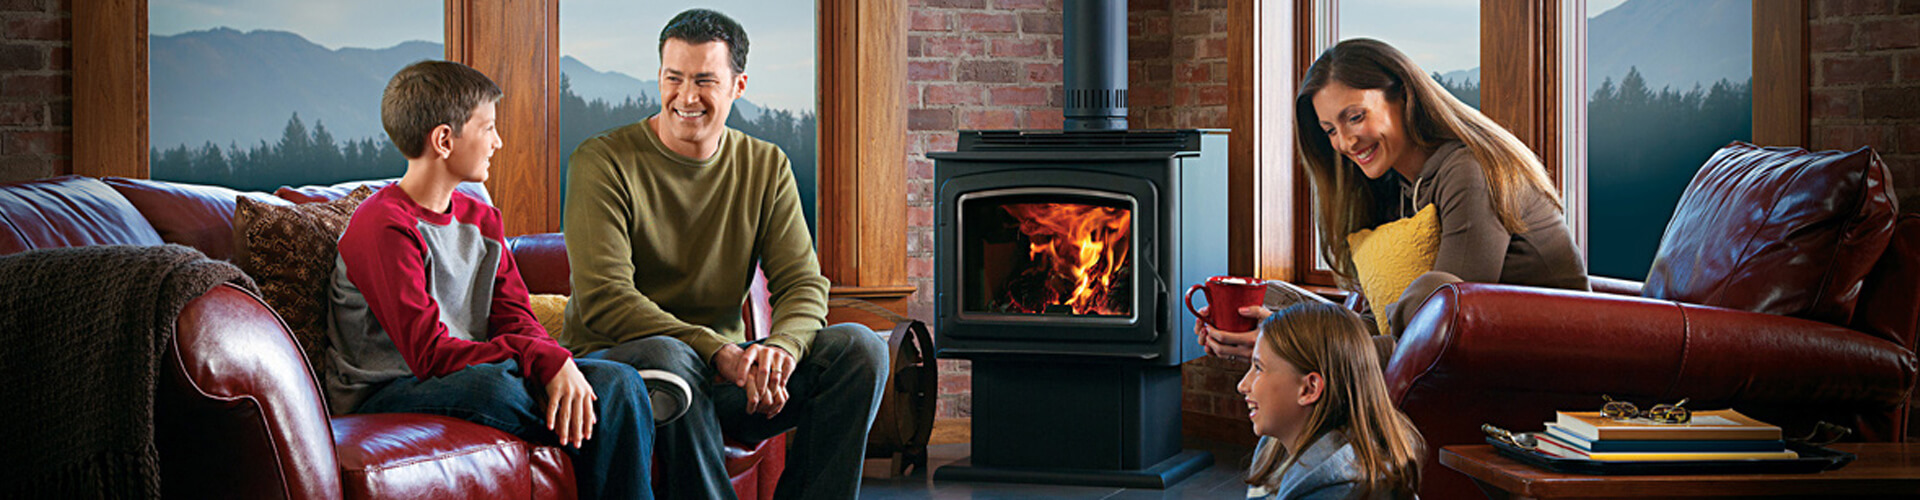 Super Savings on Wood & Pellet Stoves